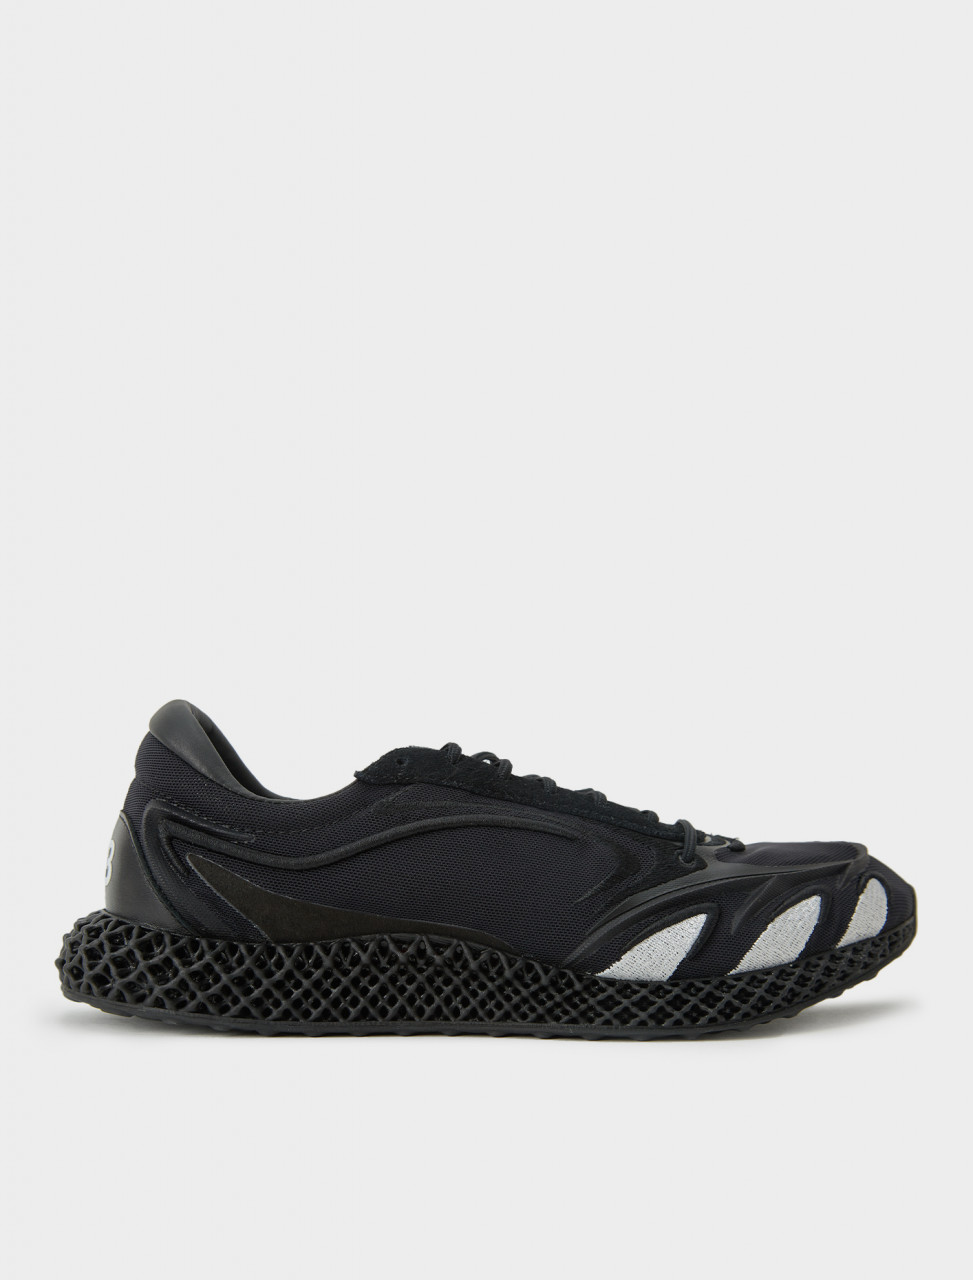 Y-3 Runner 4D in Black/Footwear White/Black